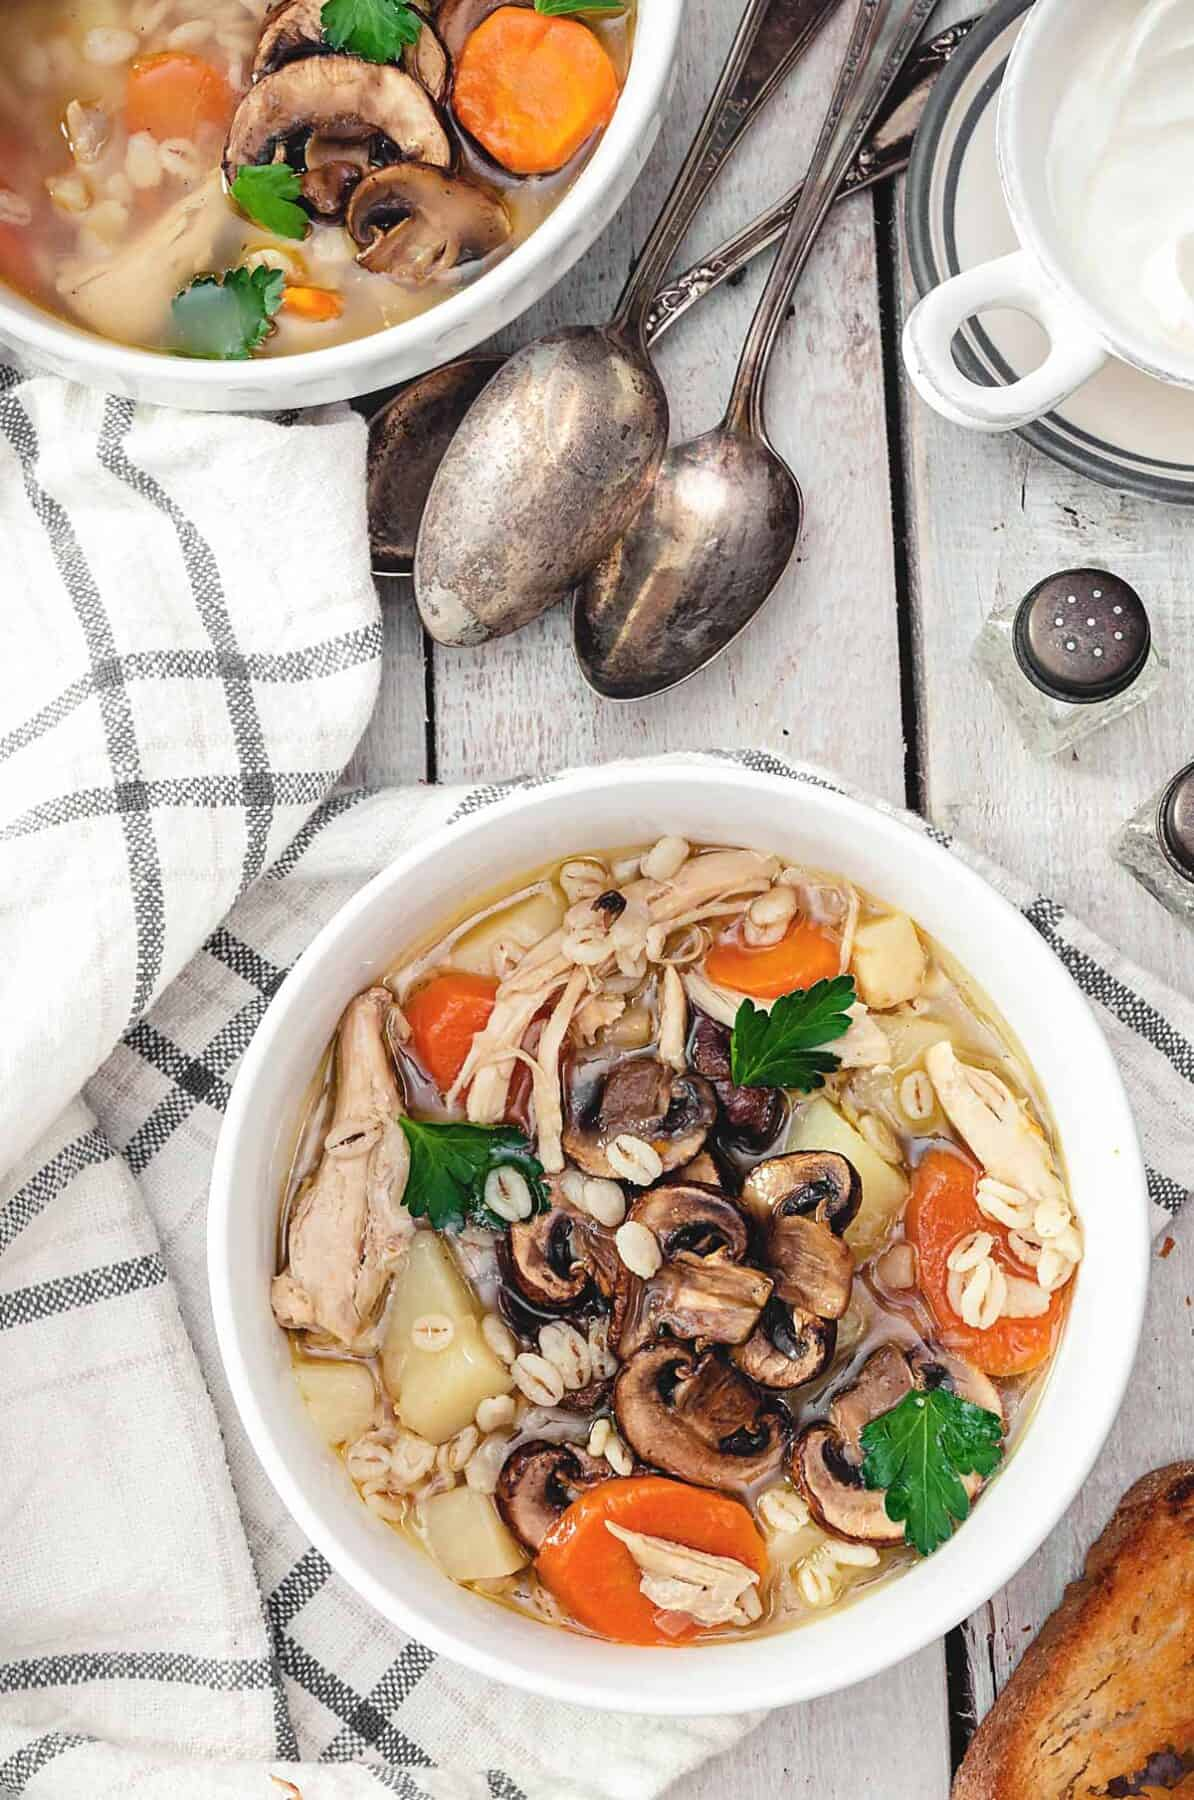 Two bowls of chicken barley soup on a white wooden table with towel and spoons.